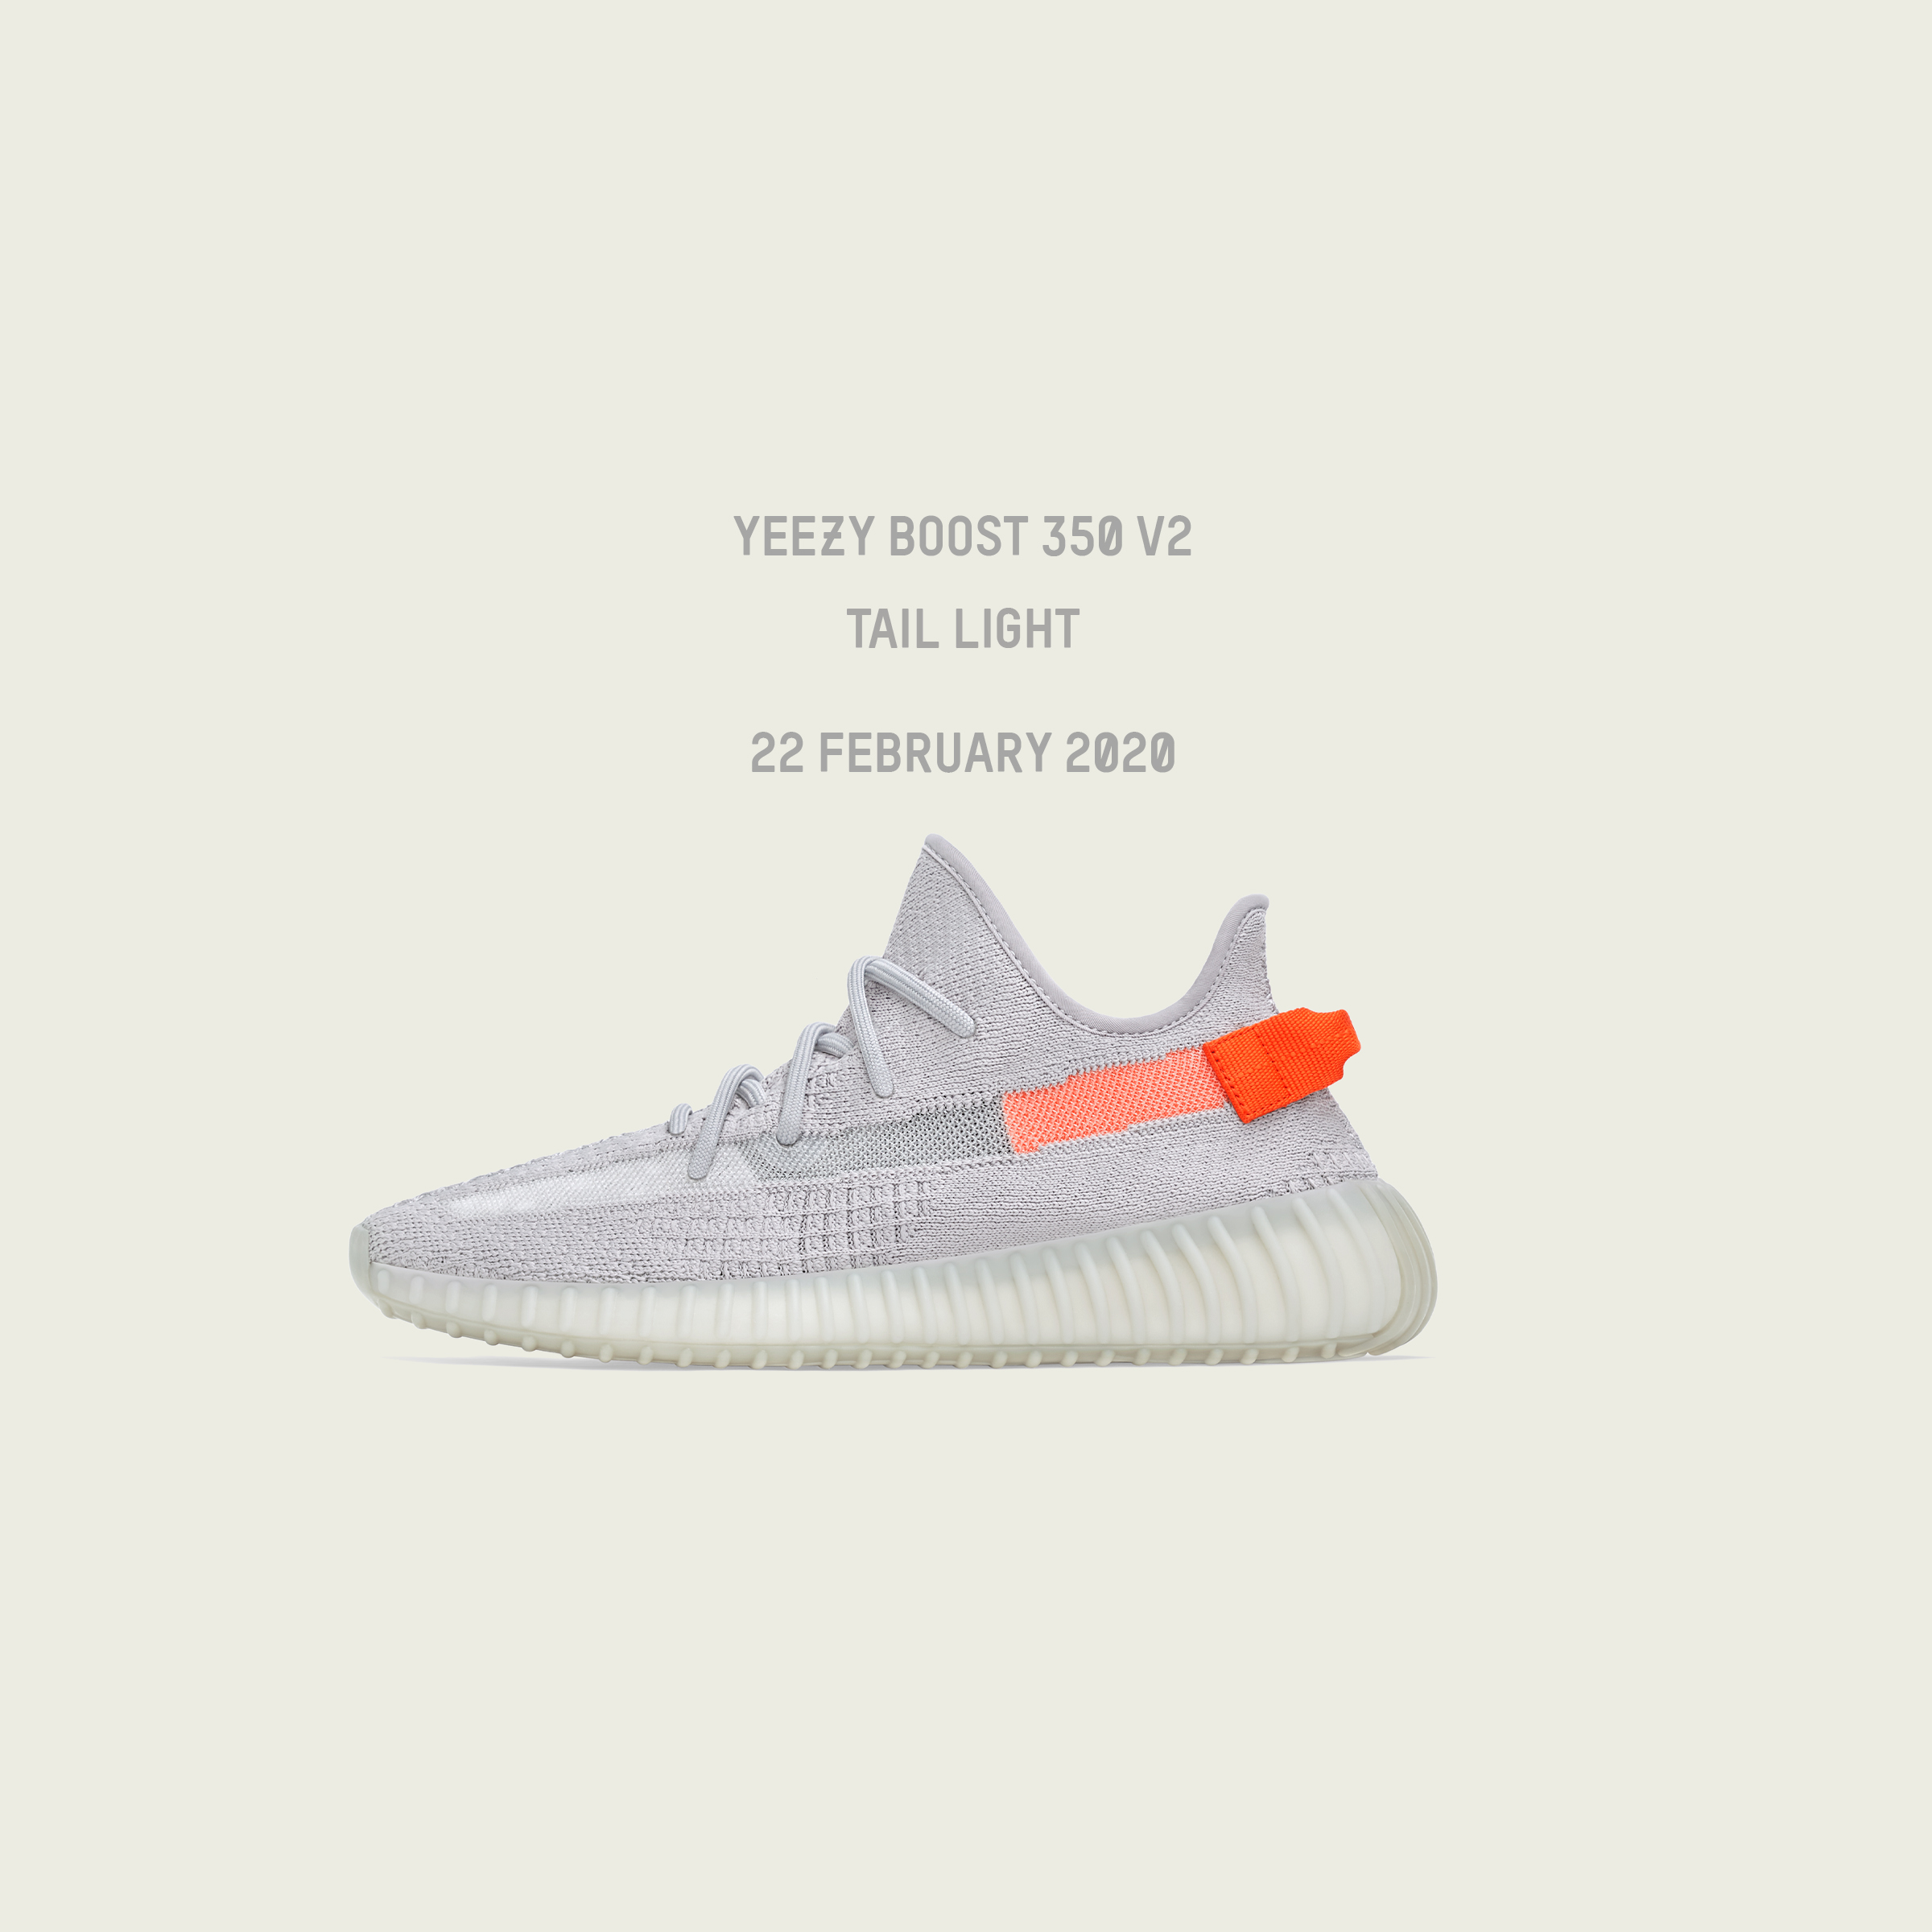 Kanye West & adidas are back with the YEEZY Boost 350 V2 'Tail Light'